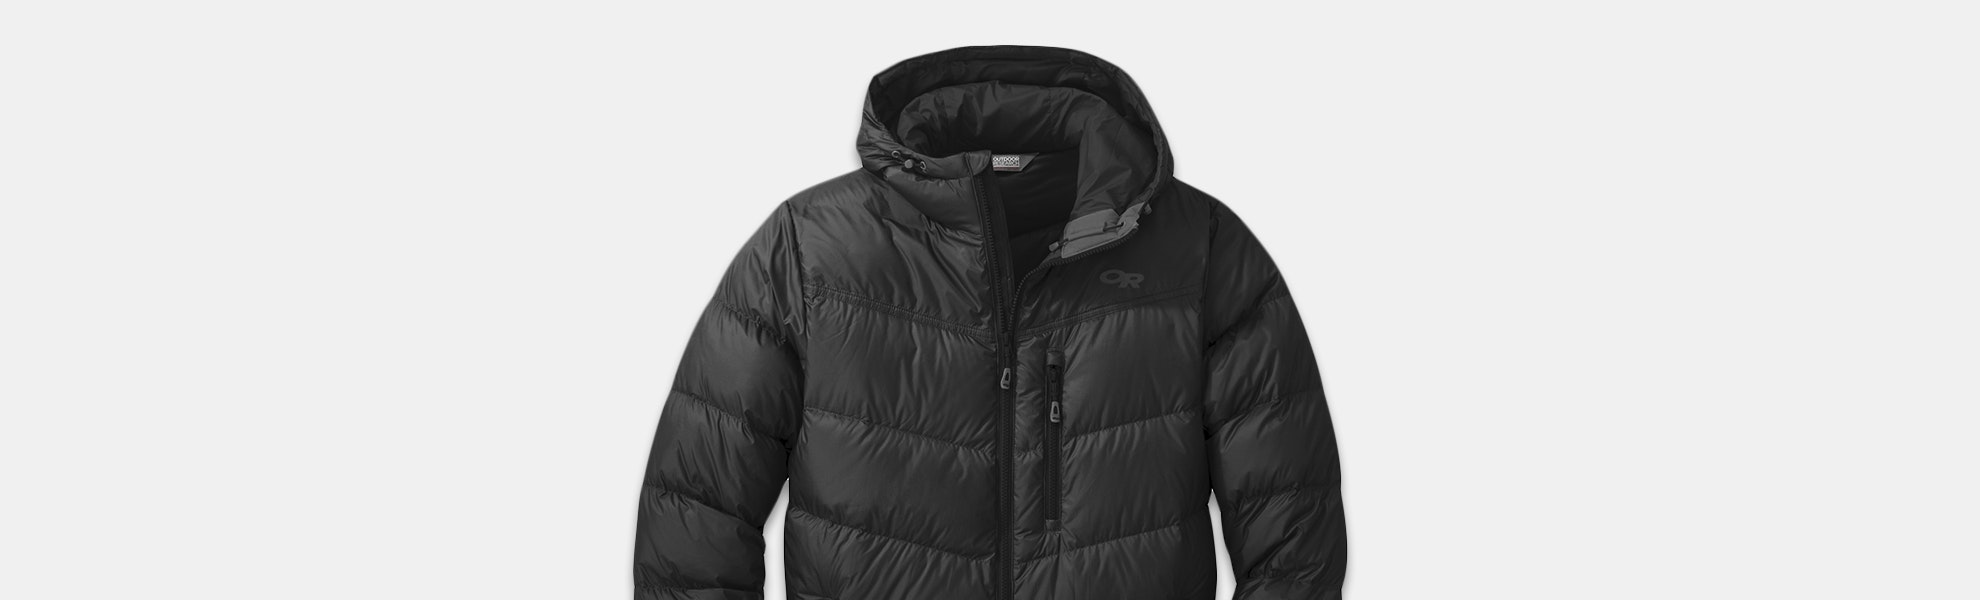 Outdoor Research Transcendent Jacket / Hoodie